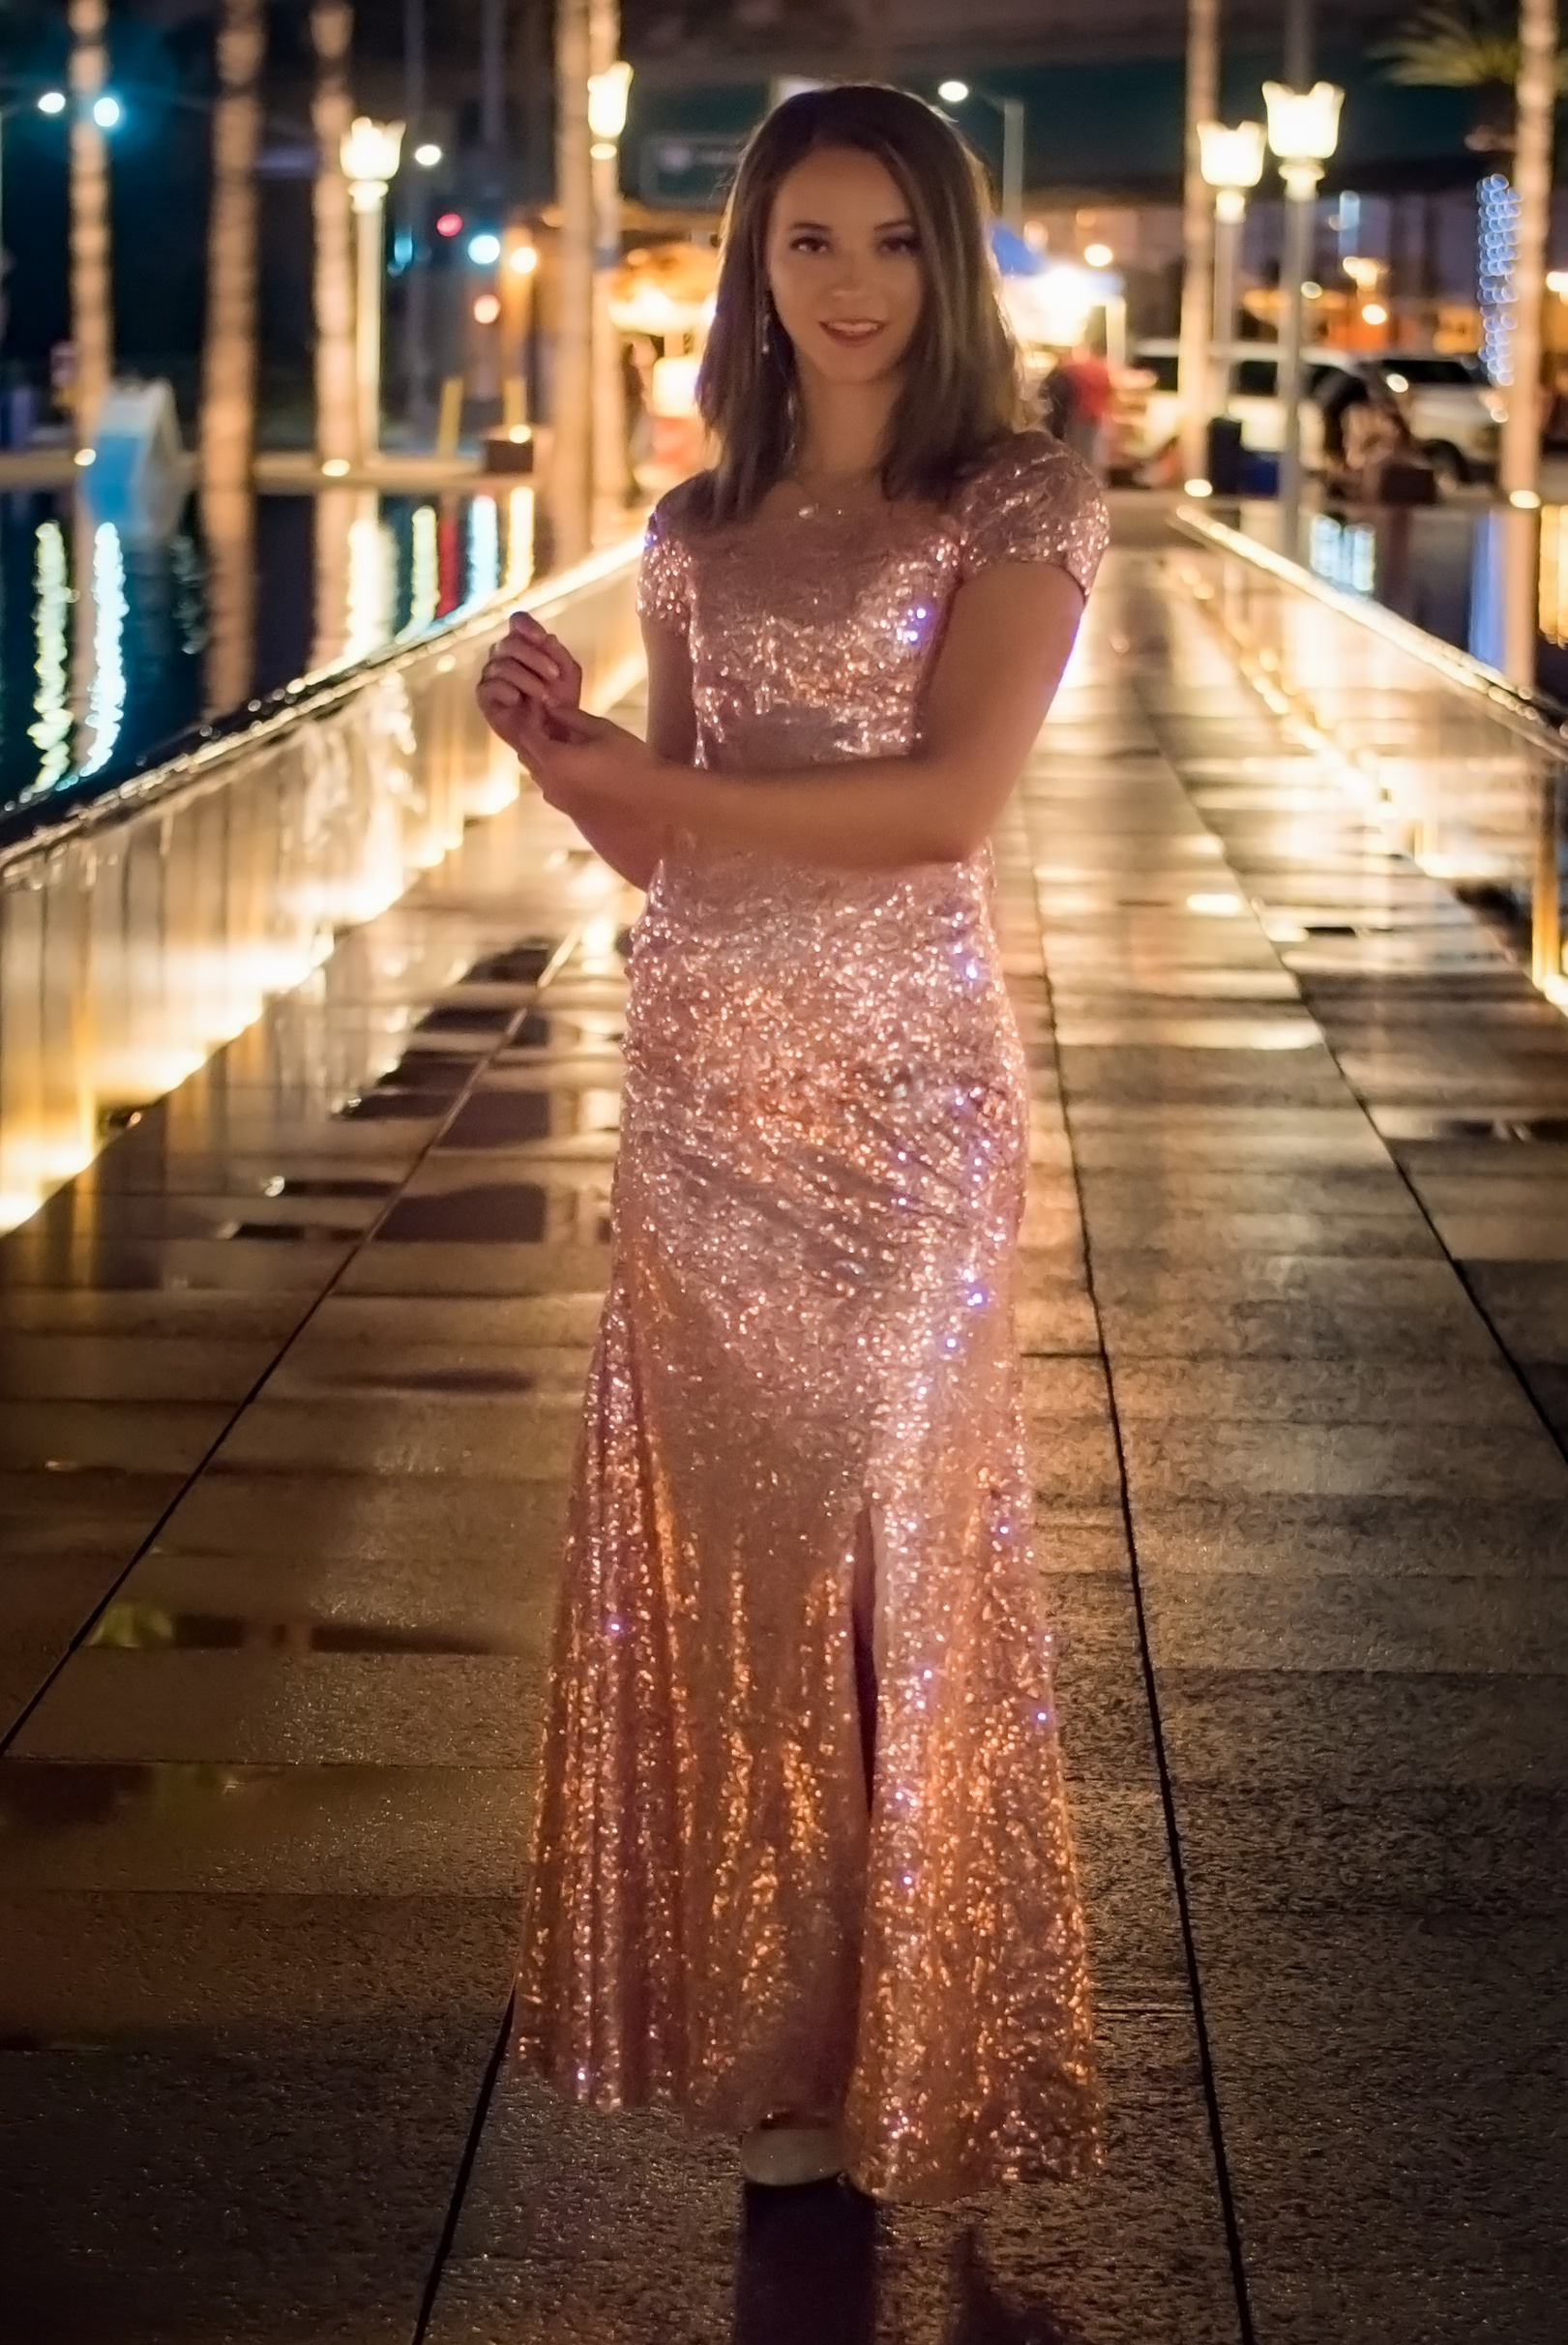 Jess Modest Blush Gold Sequin Gown